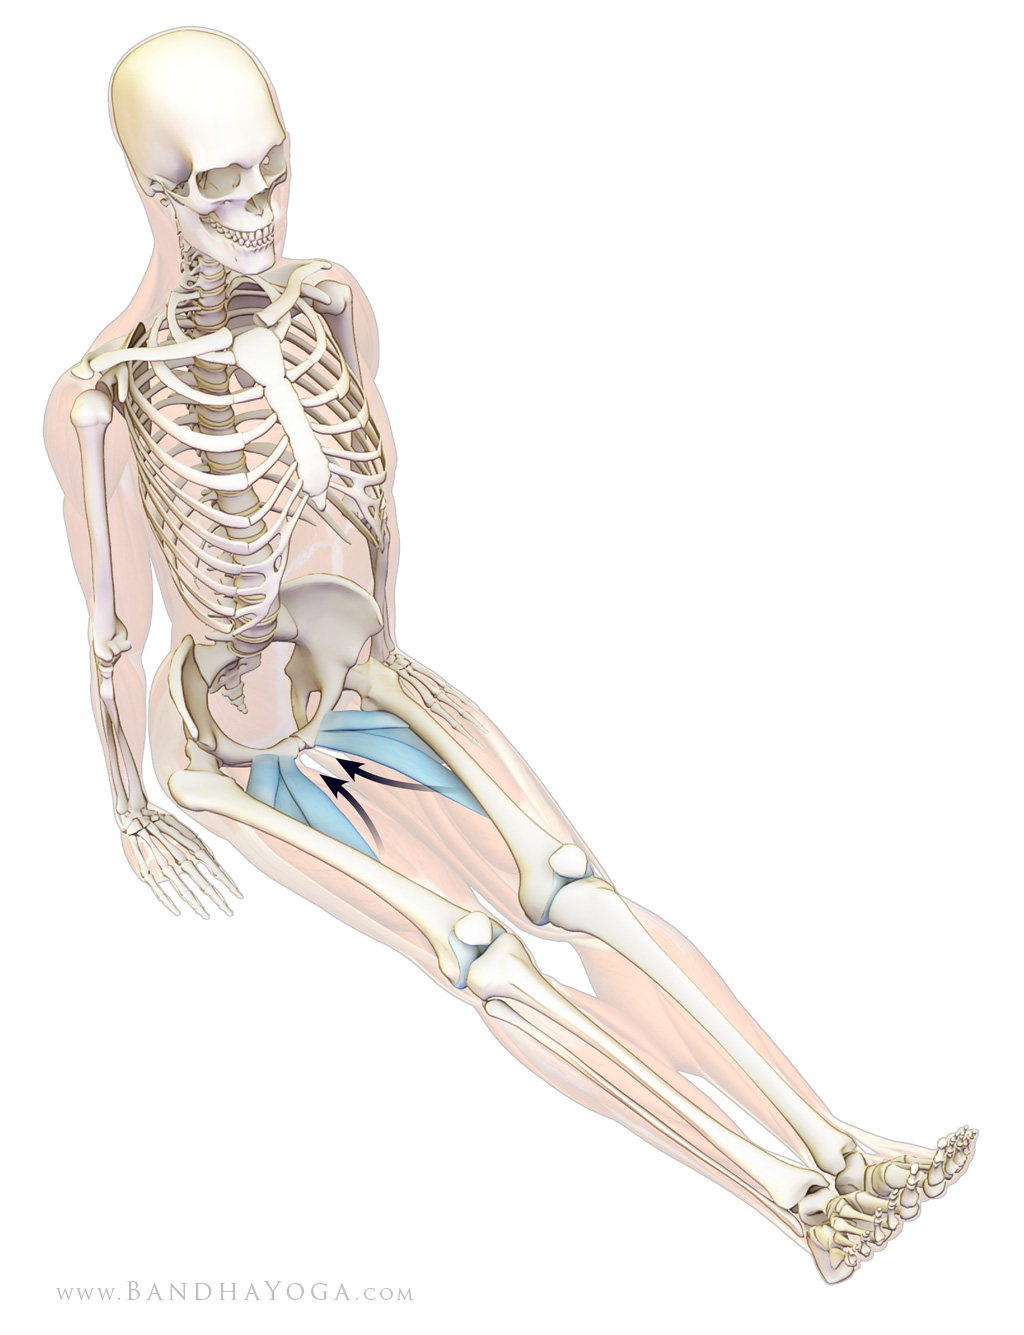 Back Pain Preventative Strategies, adductors longus, brevis, pectineus in Dandasana, staff pose